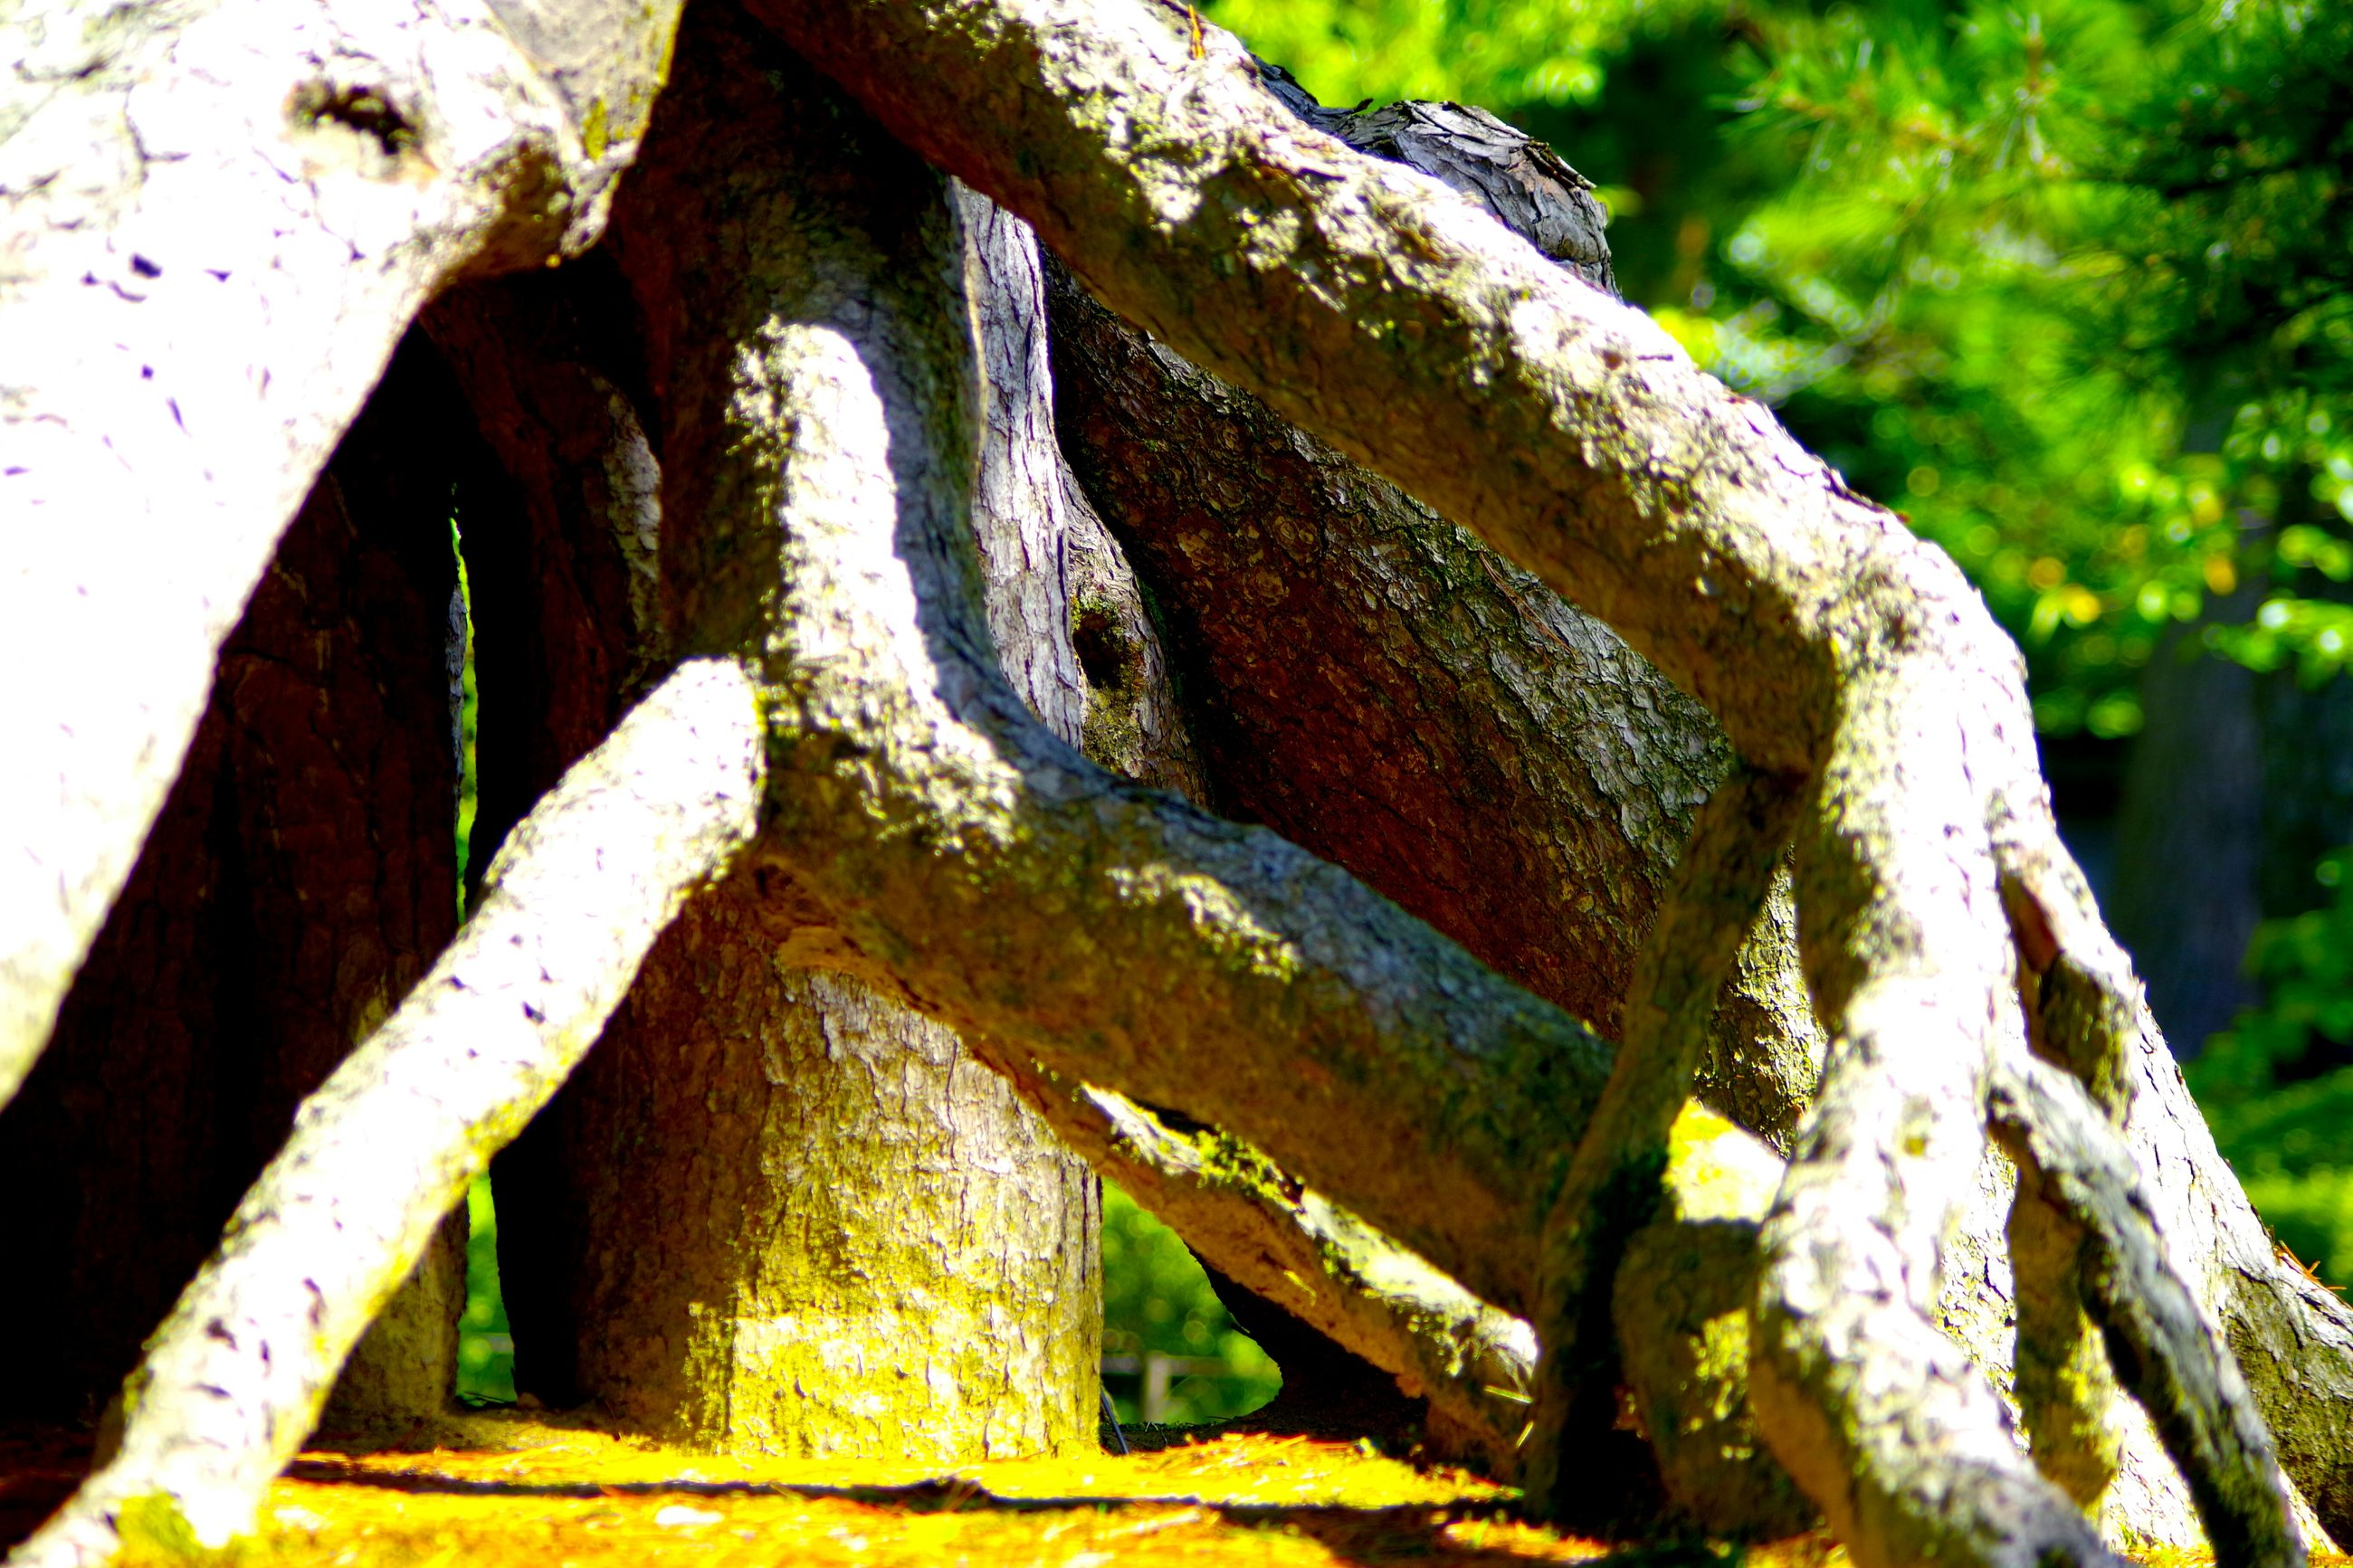 close-up, focus on foreground, tree, tree trunk, wood - material, old, weathered, growth, textured, day, outdoors, nature, no people, damaged, moss, branch, forest, bark, selective focus, sunlight